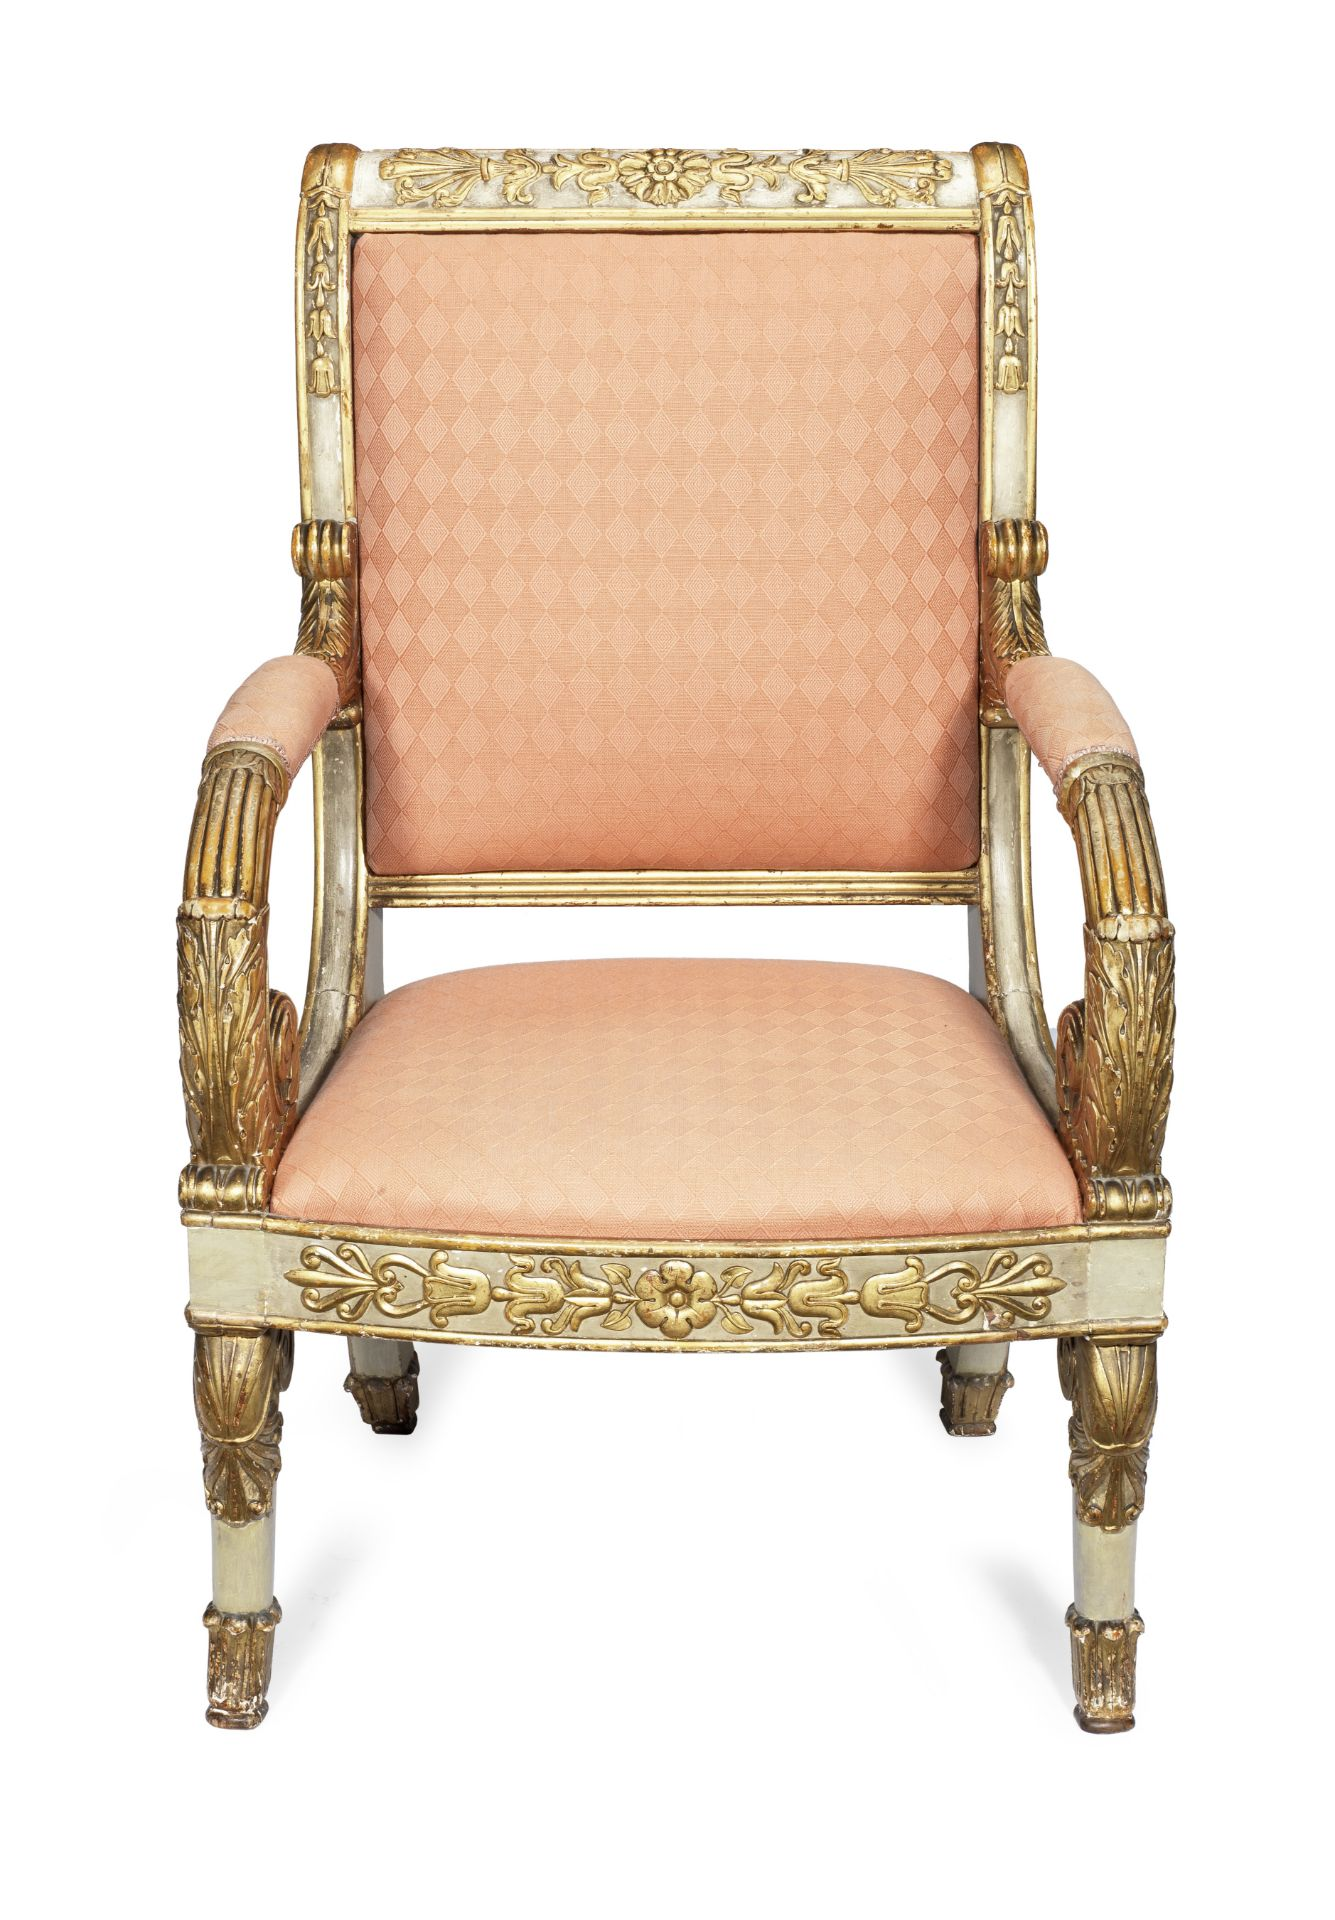 Los 48 - An Empire painted and parcel gilt fauteuil